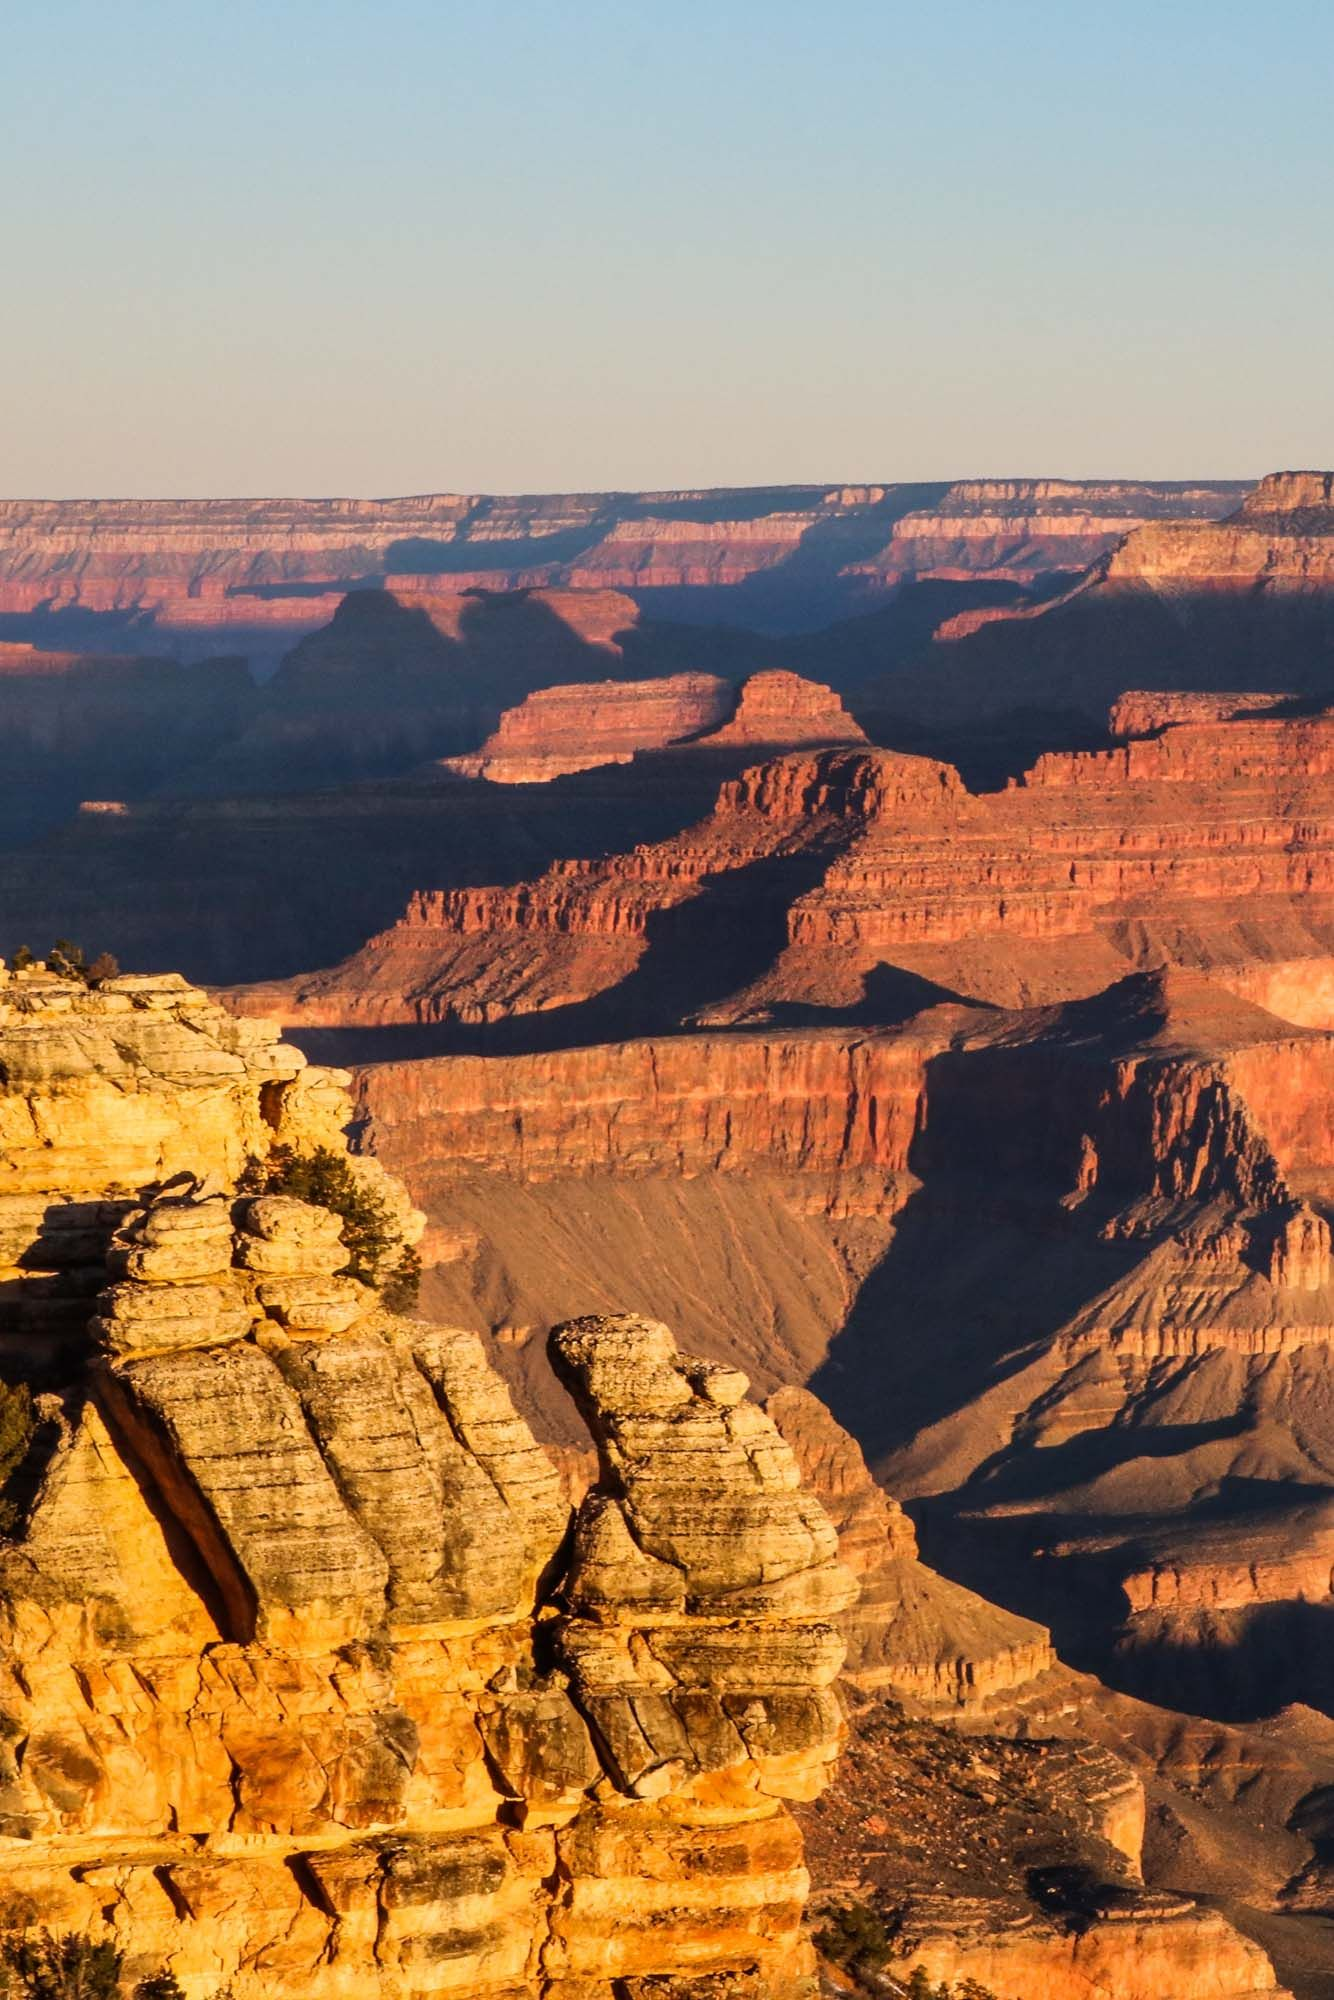 Sunrise at Mather Point Overlook in Grand Canyon National Park, Arizona #grandcanyon